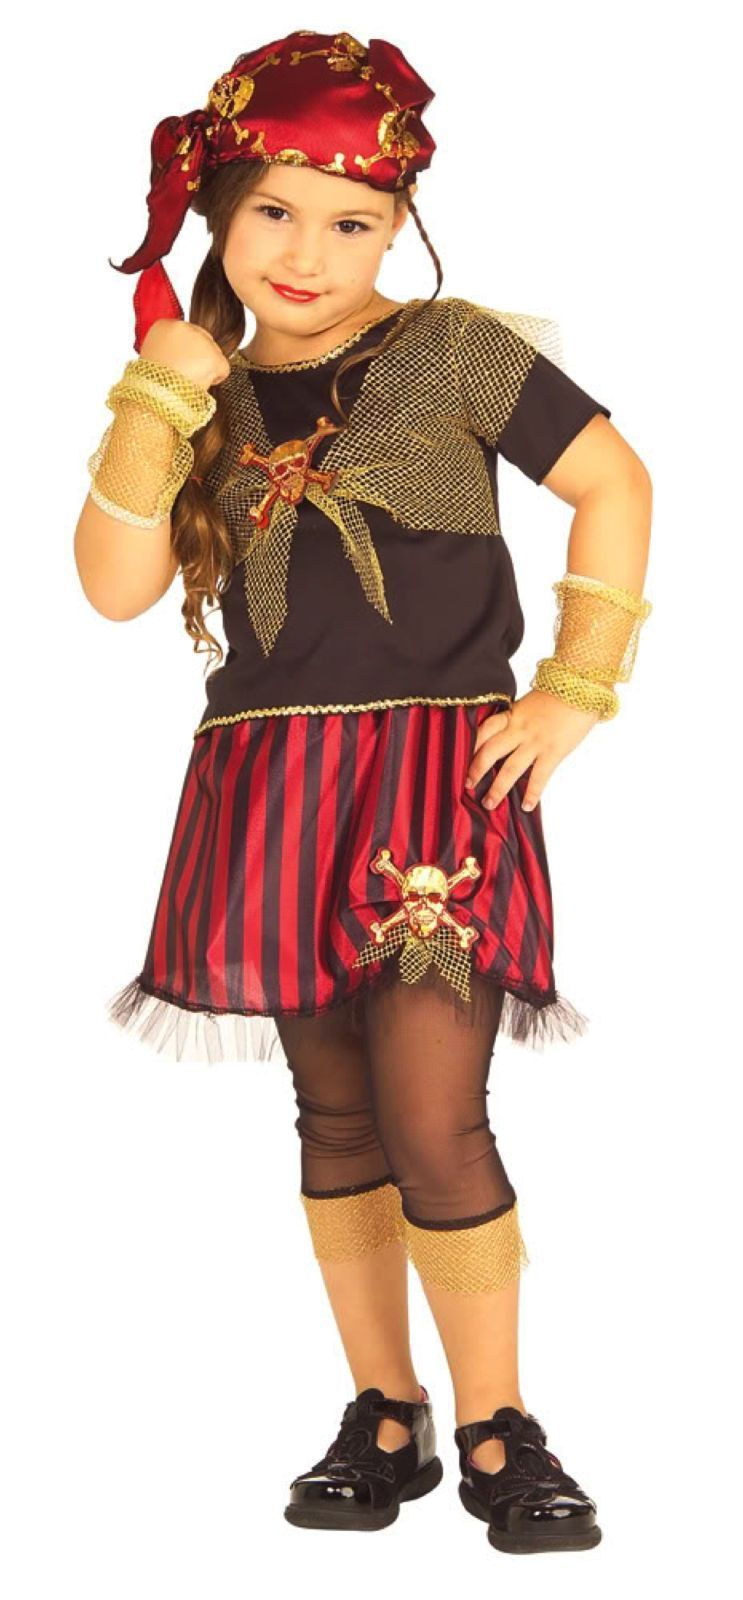 Image 0 of Precious Pirate Princess of the Sea Girls Complete Sassy Costume by Rubies - Red